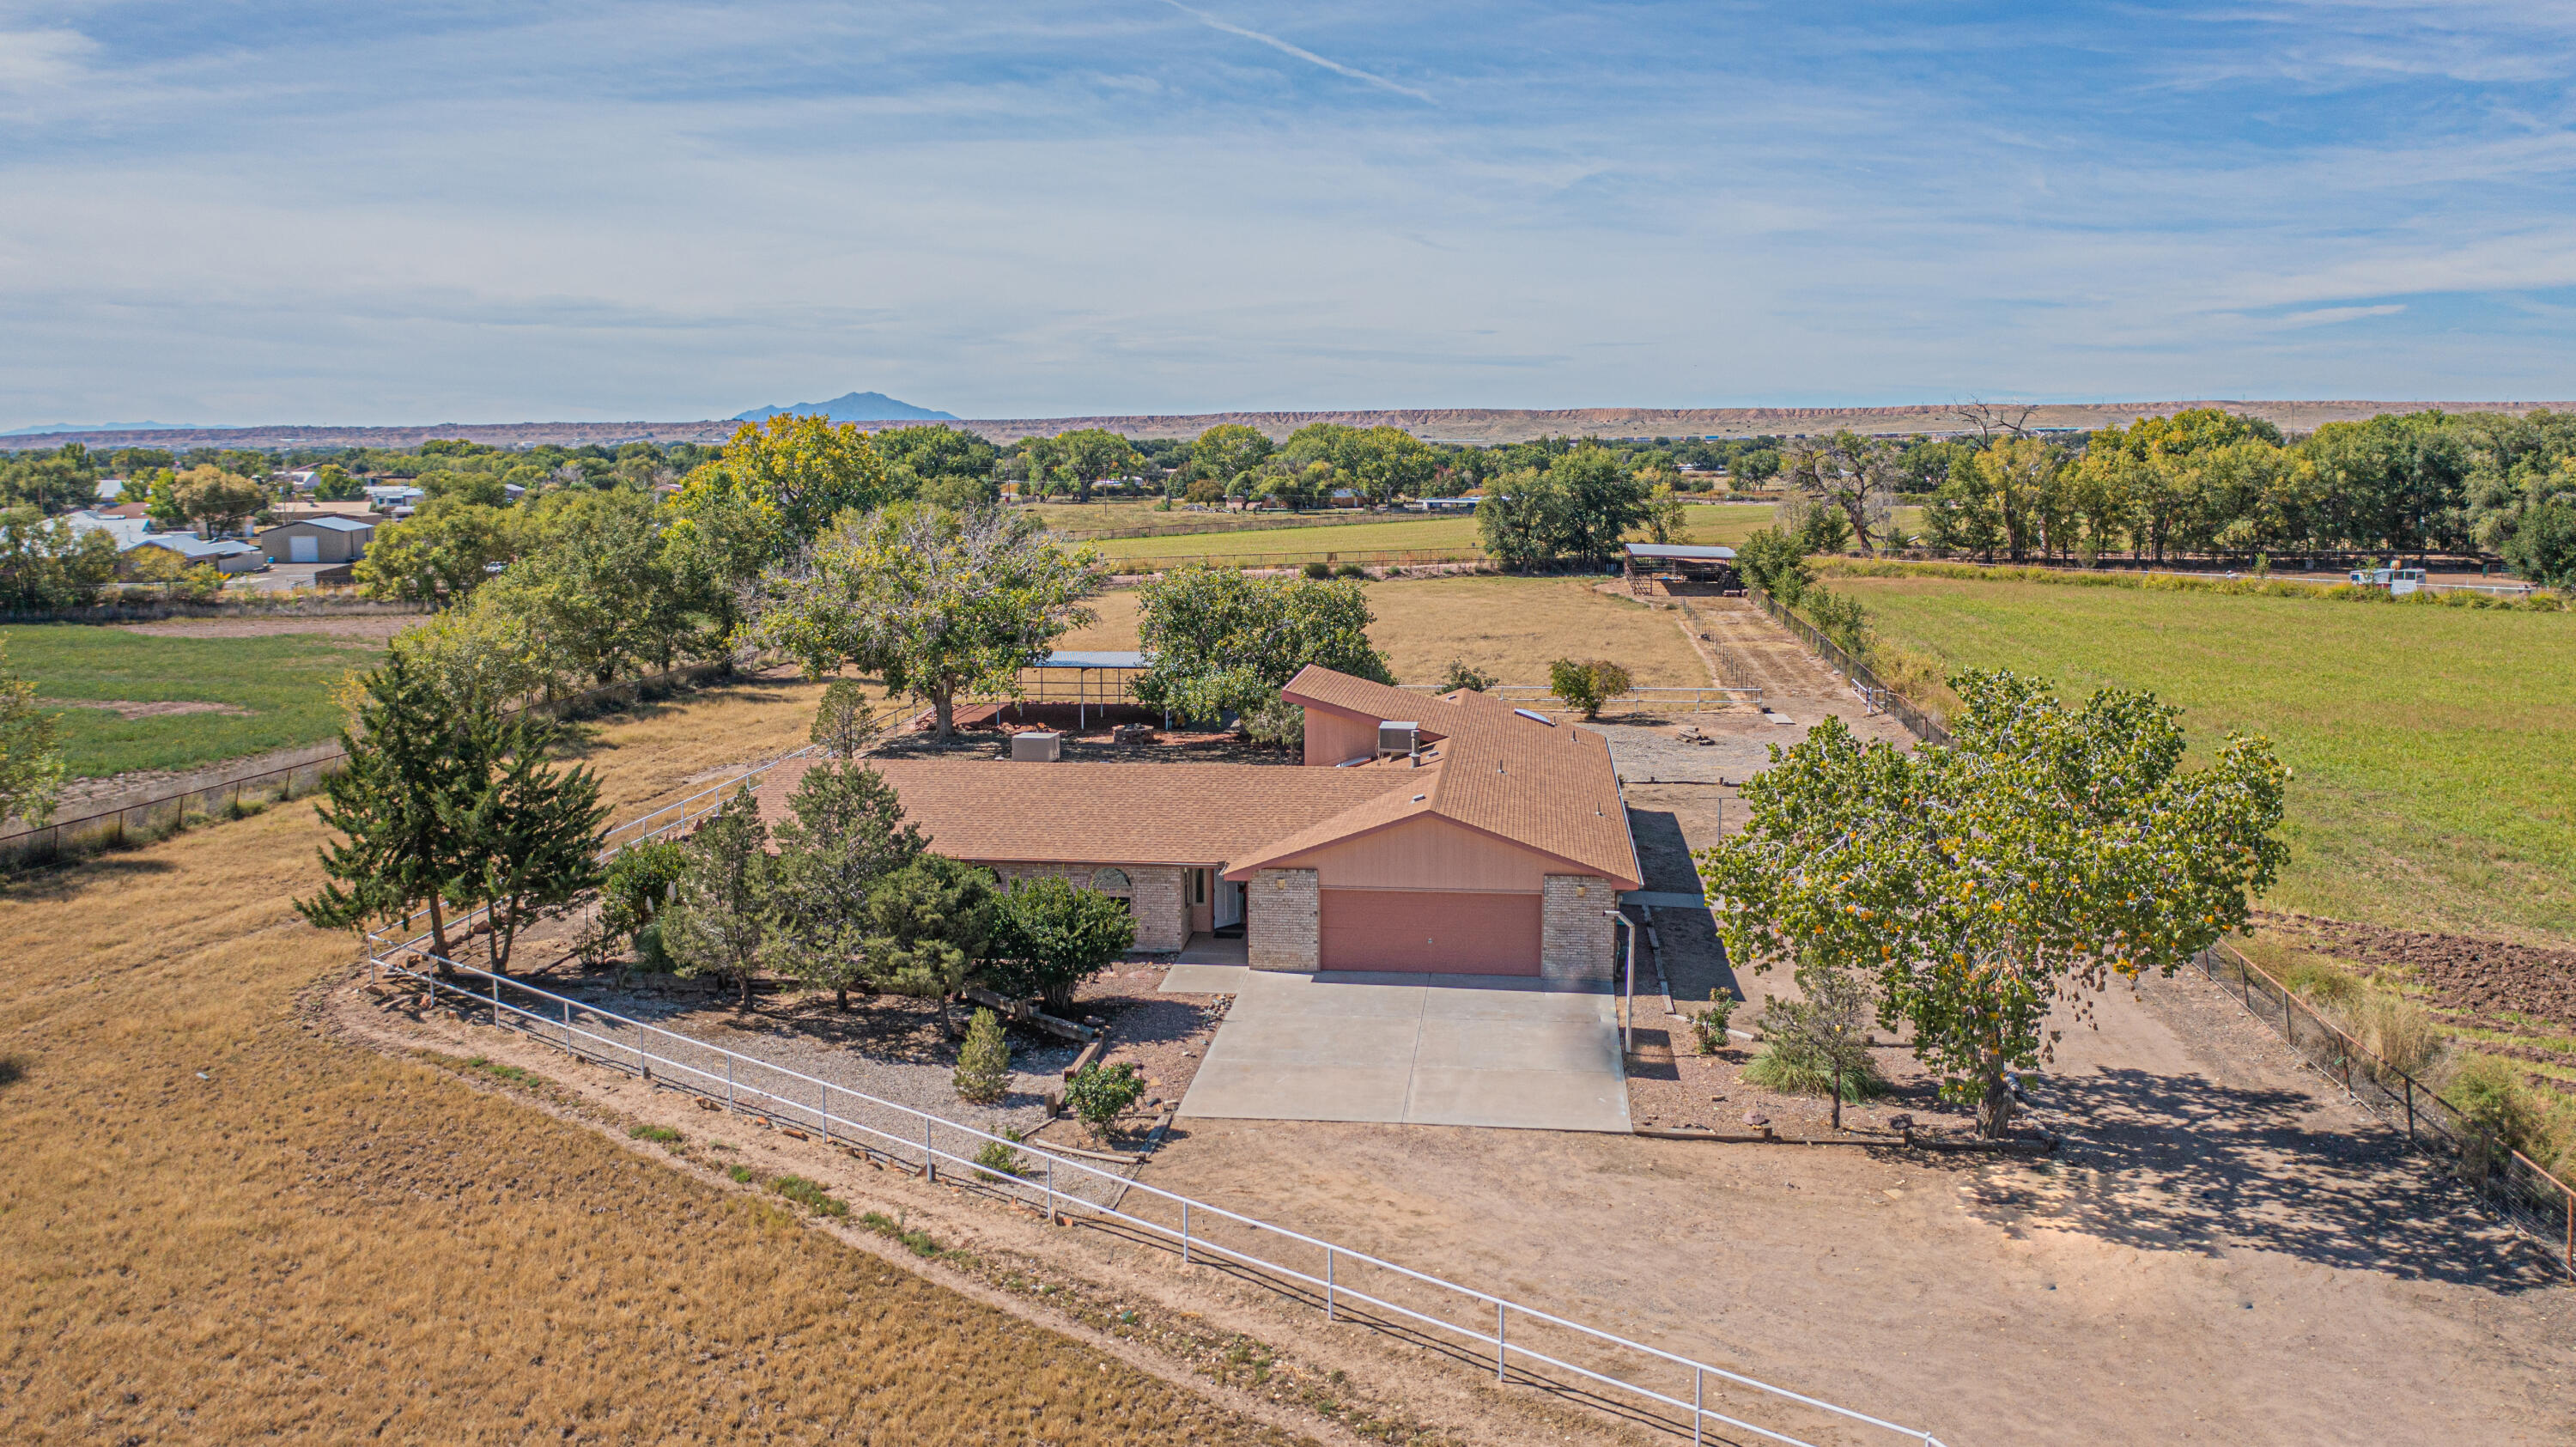 Newly remodeled home on 7.87 acres is ready for a new owner. Country living close to town. Big kitchen with granite counter tops, newer appliances and eat in kitchen with island has great views of the acreage and those NM sunsets. 2 living areas, separate dining room, office, 3 bedrooms and 2.5 baths gives you plenty of room for all of your family get togethers. You can always move outside to the covered area with firepit to enjoy our beautiful NM evenings with family and friends. Bring your animals, there's plenty of room for them too with pipe fenced corrals and hay barn. Home has 2 newer master cool units to keep you cool on those hot summer days and radiant baseboard heating (broiler was recently replaced) and a pellet stove for those cooler months. Don't miss this opportunity.